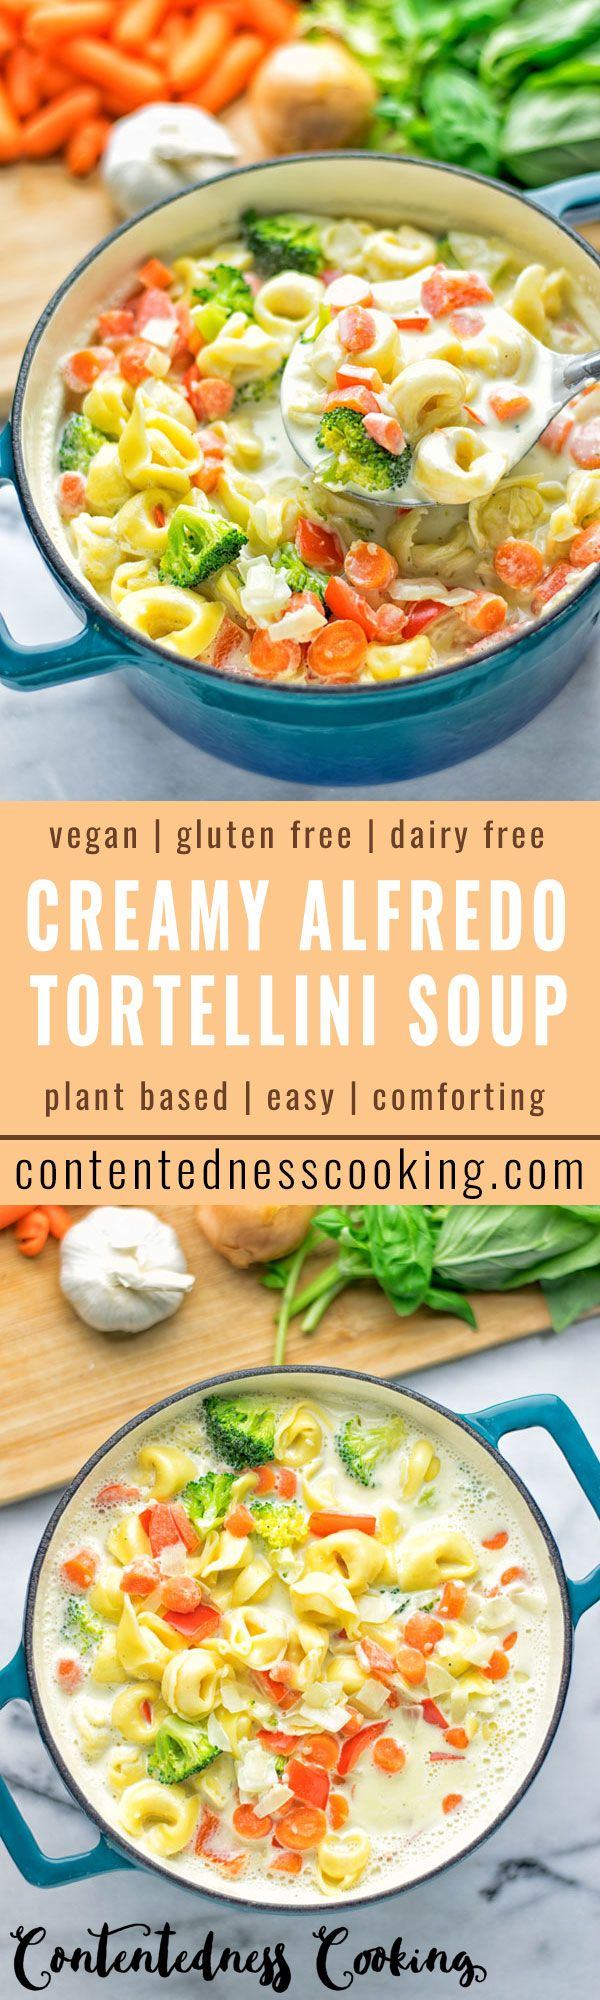 This Creamy Alfredo Tortellini Soup is entirely vegan and gluten free. Super easy to make and insanely delicious. A must make for everyone!